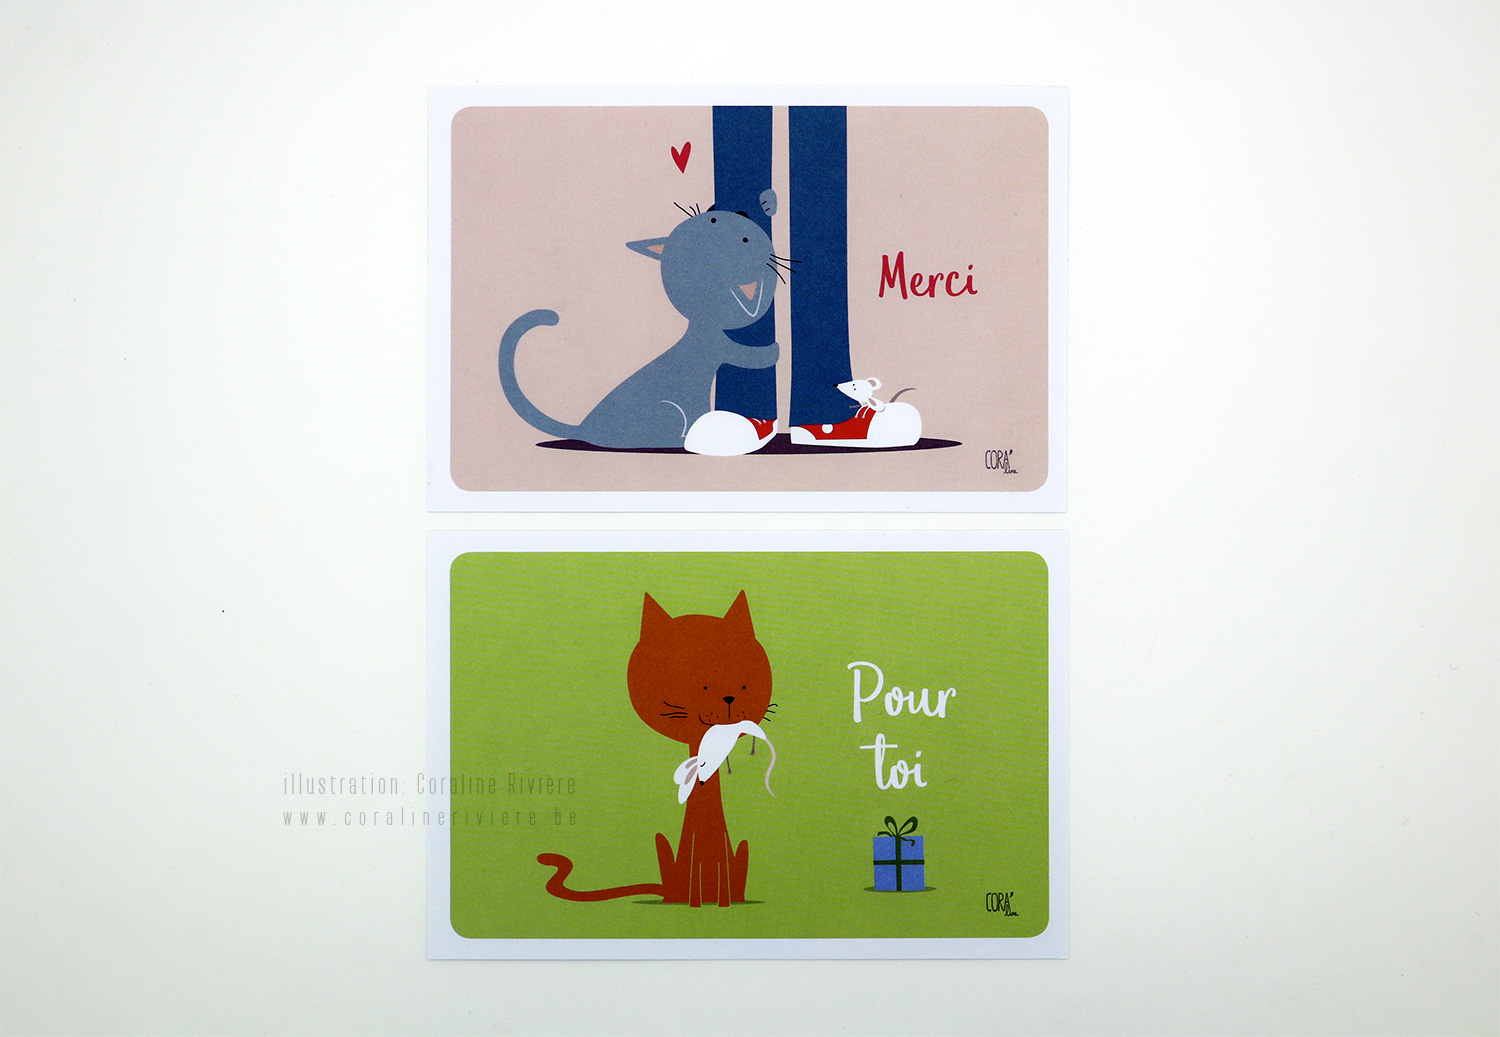 cartes chat merci cadeau messages dessin chat souris illustration